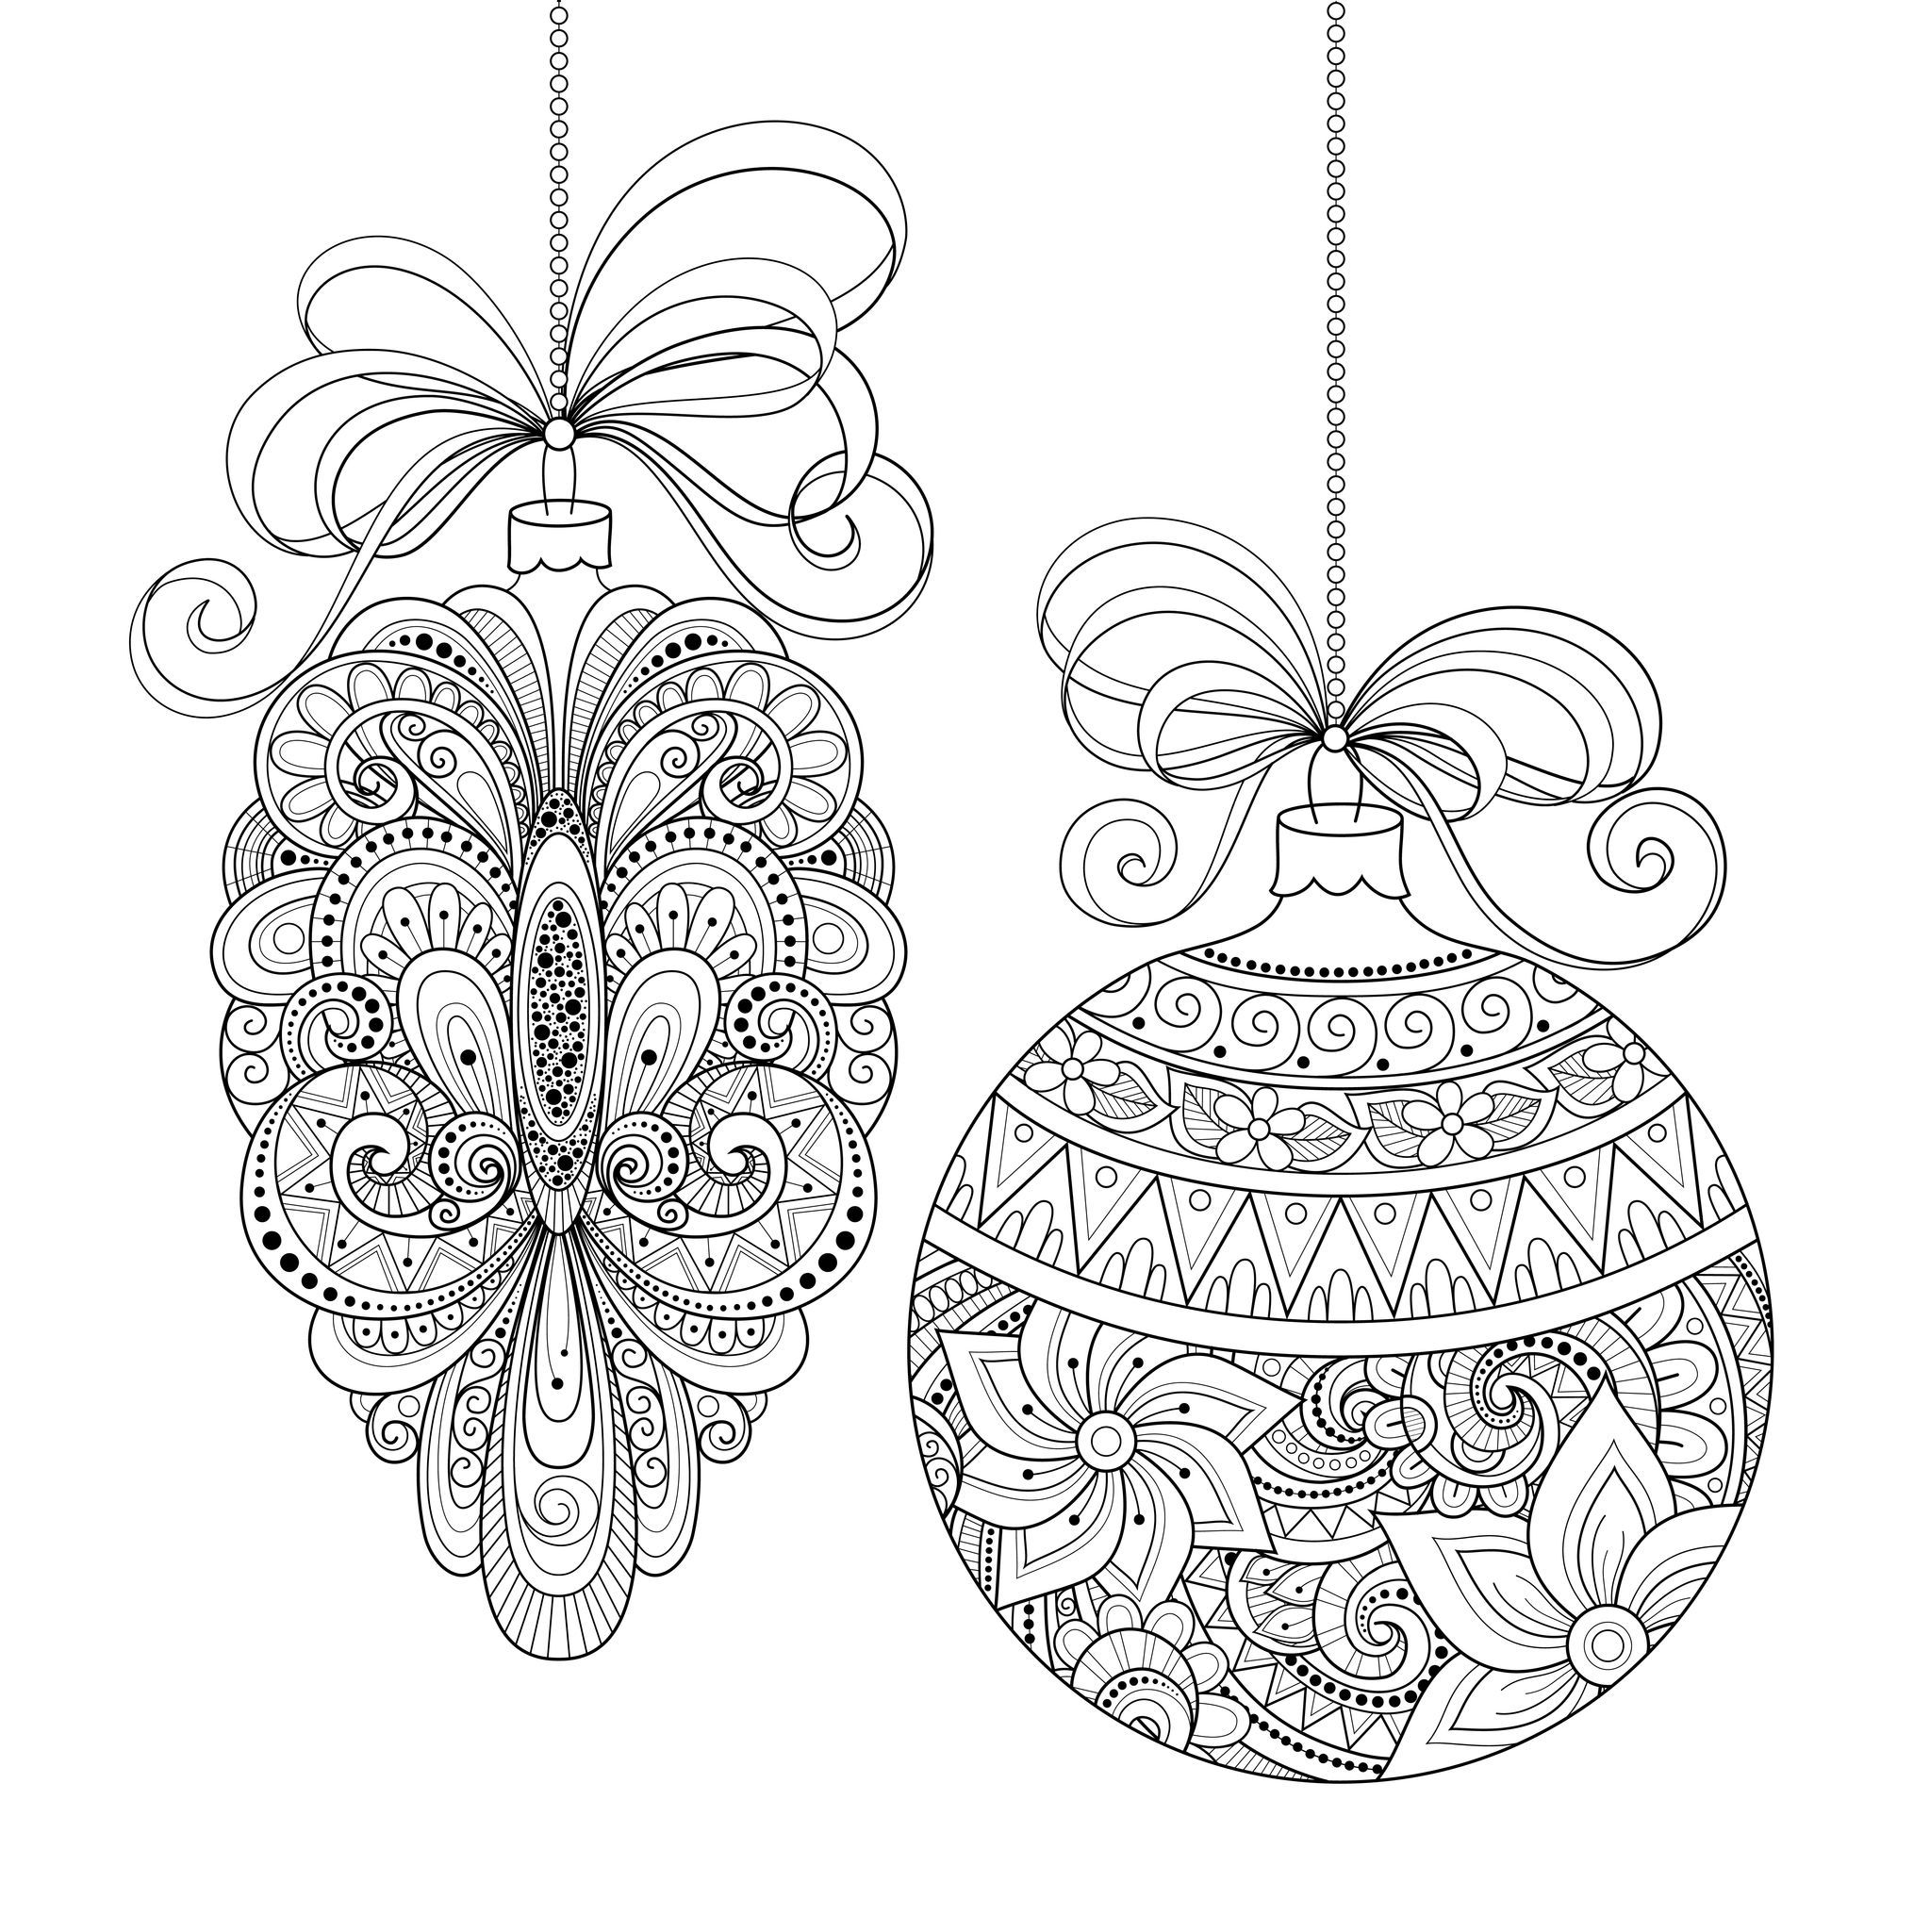 Free printables christmas coloring pages - Adult Christmas Ornaments By Irinarivoruchko Coloring Pages Printable And Coloring Book To Print For Free Find More Coloring Pages Online For Kids And